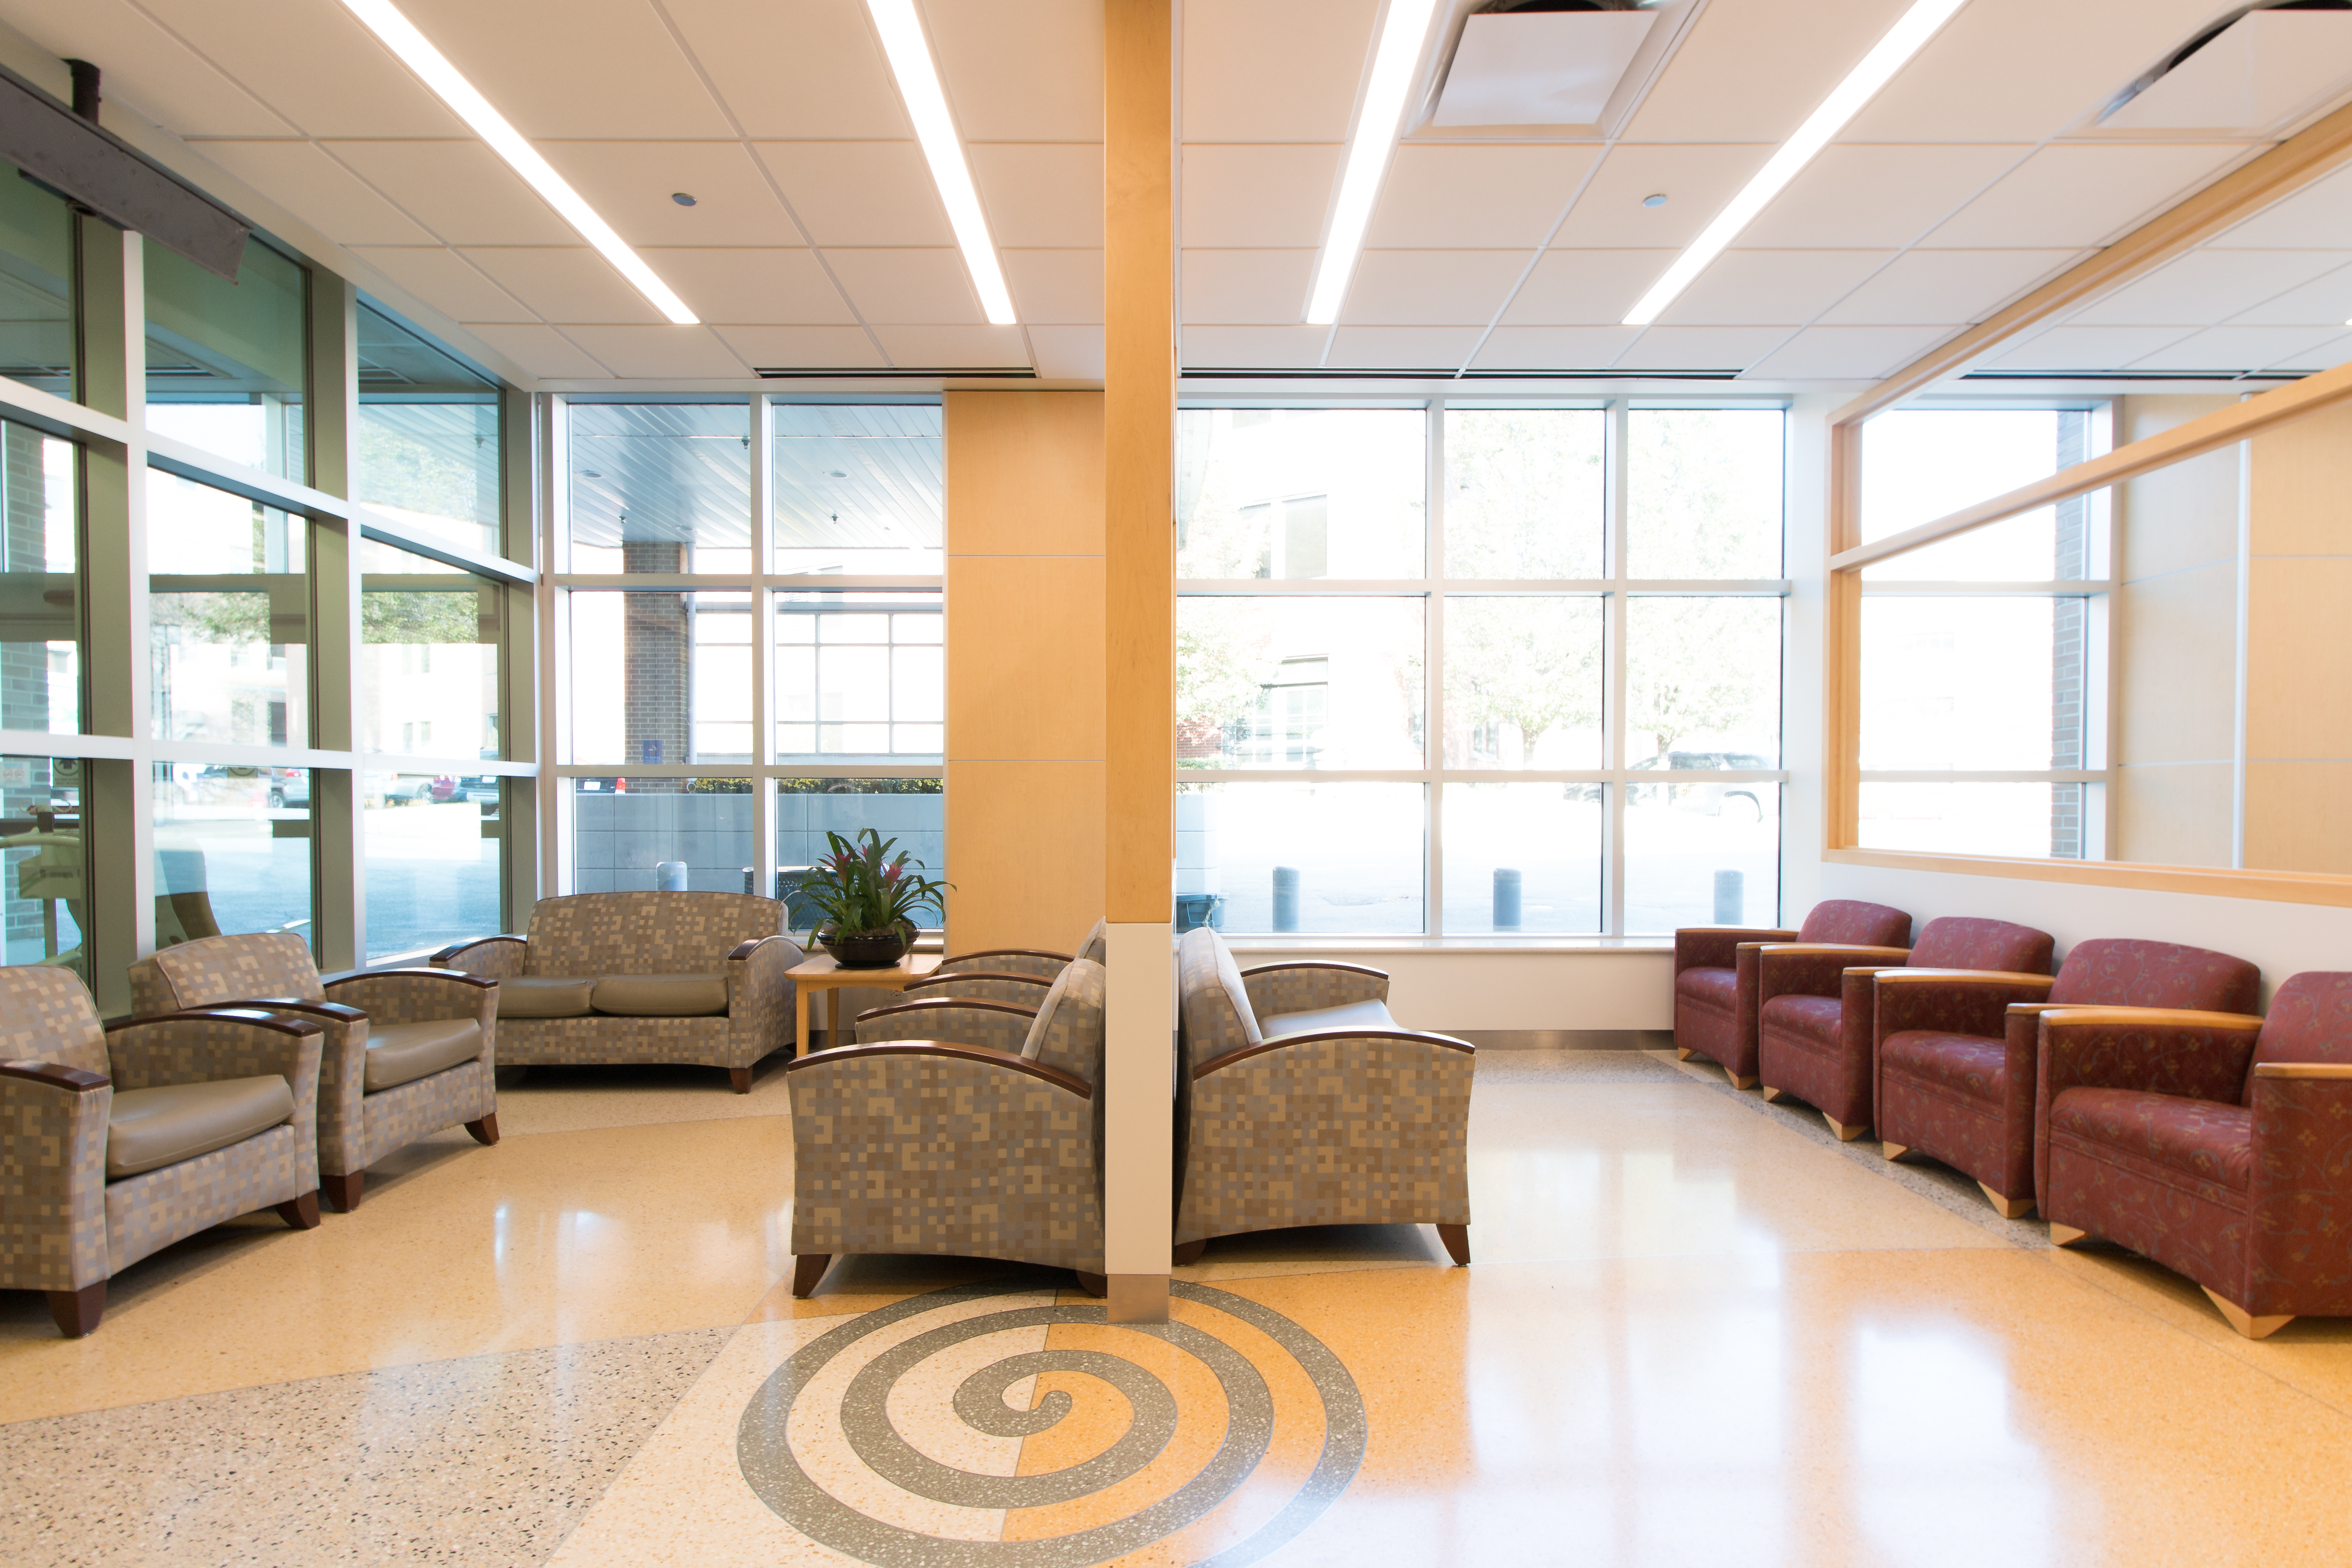 Emergency Department Renovation Swedish Covenant Hospital Chicago